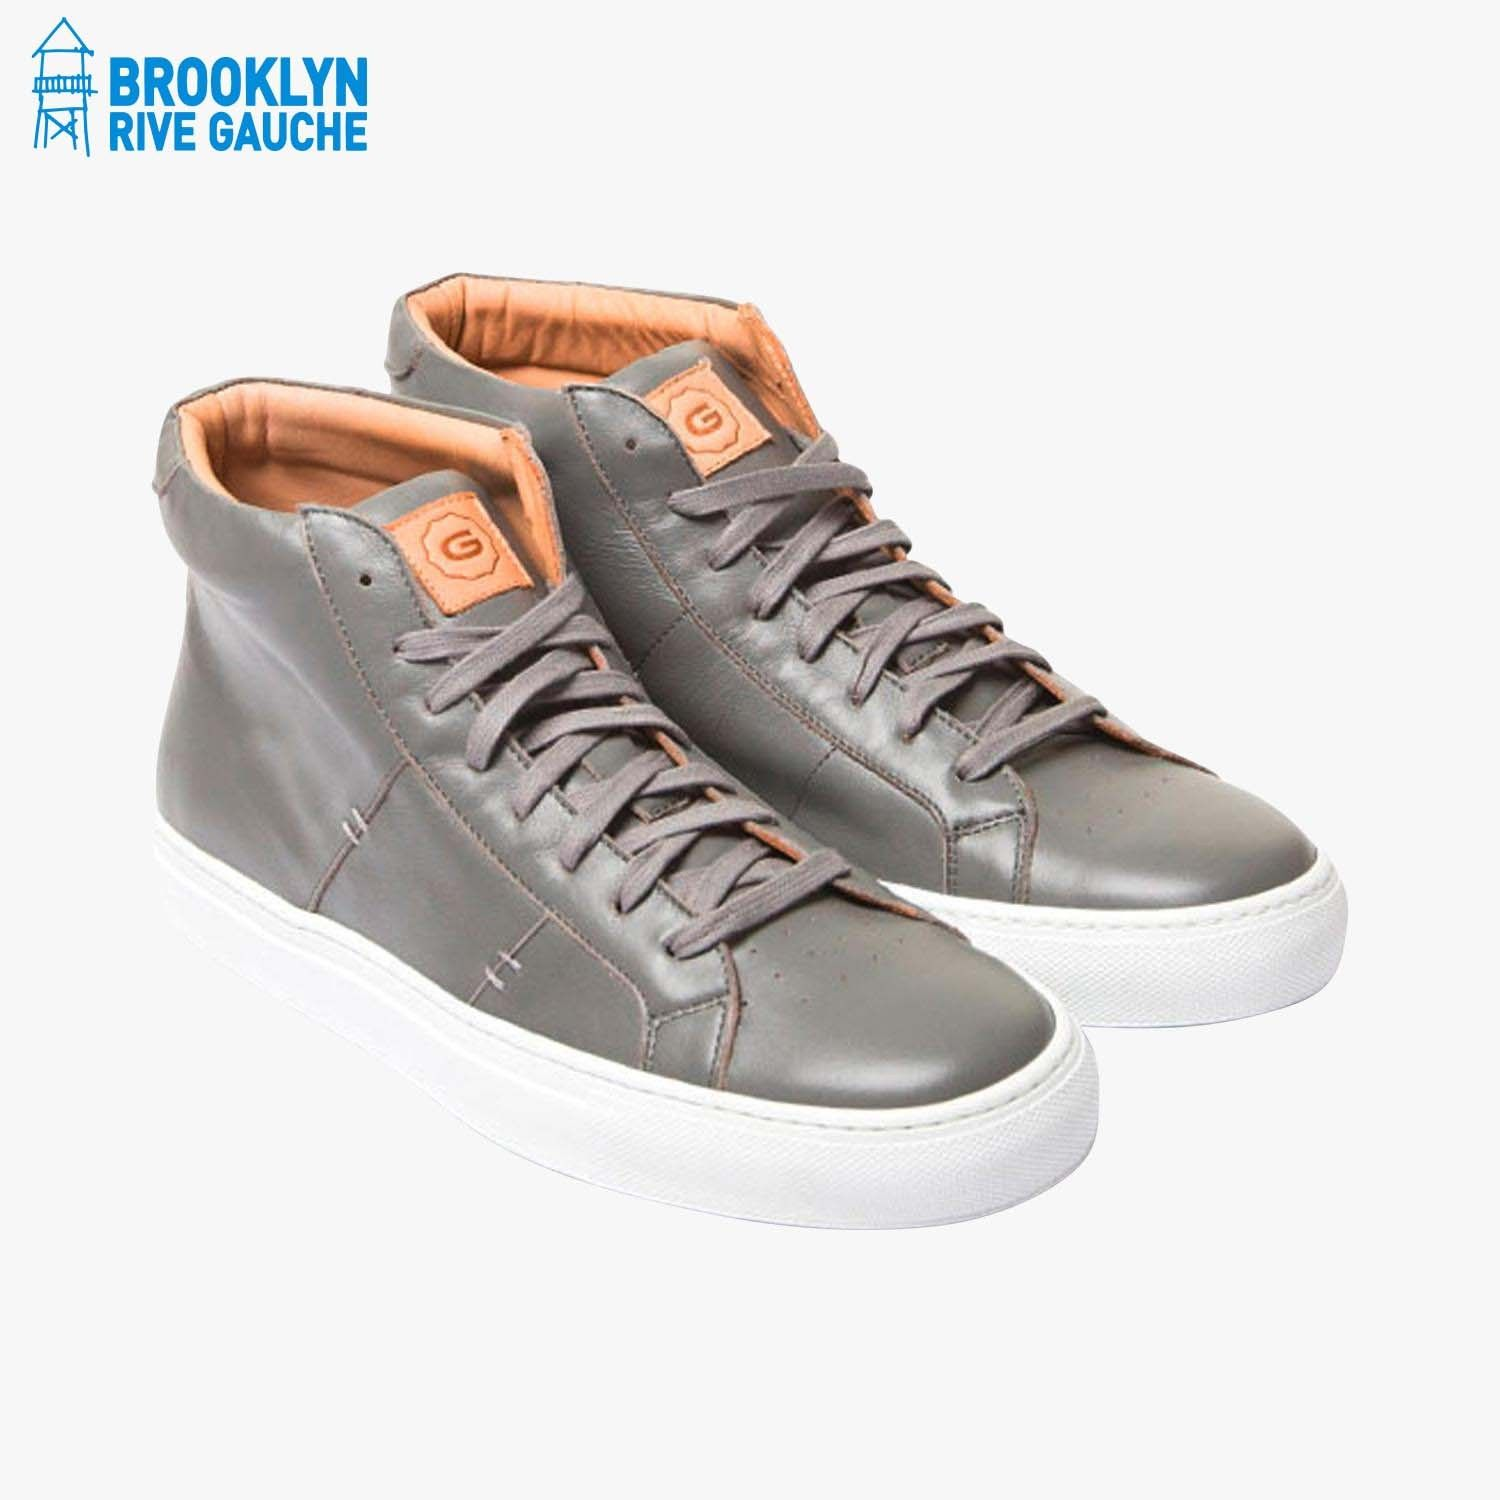 Baskets The Royale High grises - Greats #LeBonMarche #Tendance #LeDressing #Dressing #Brooklyn #fashion #mode #man #homme #Bk #USA #shoes #chaussures #BrooklynRiveGauche